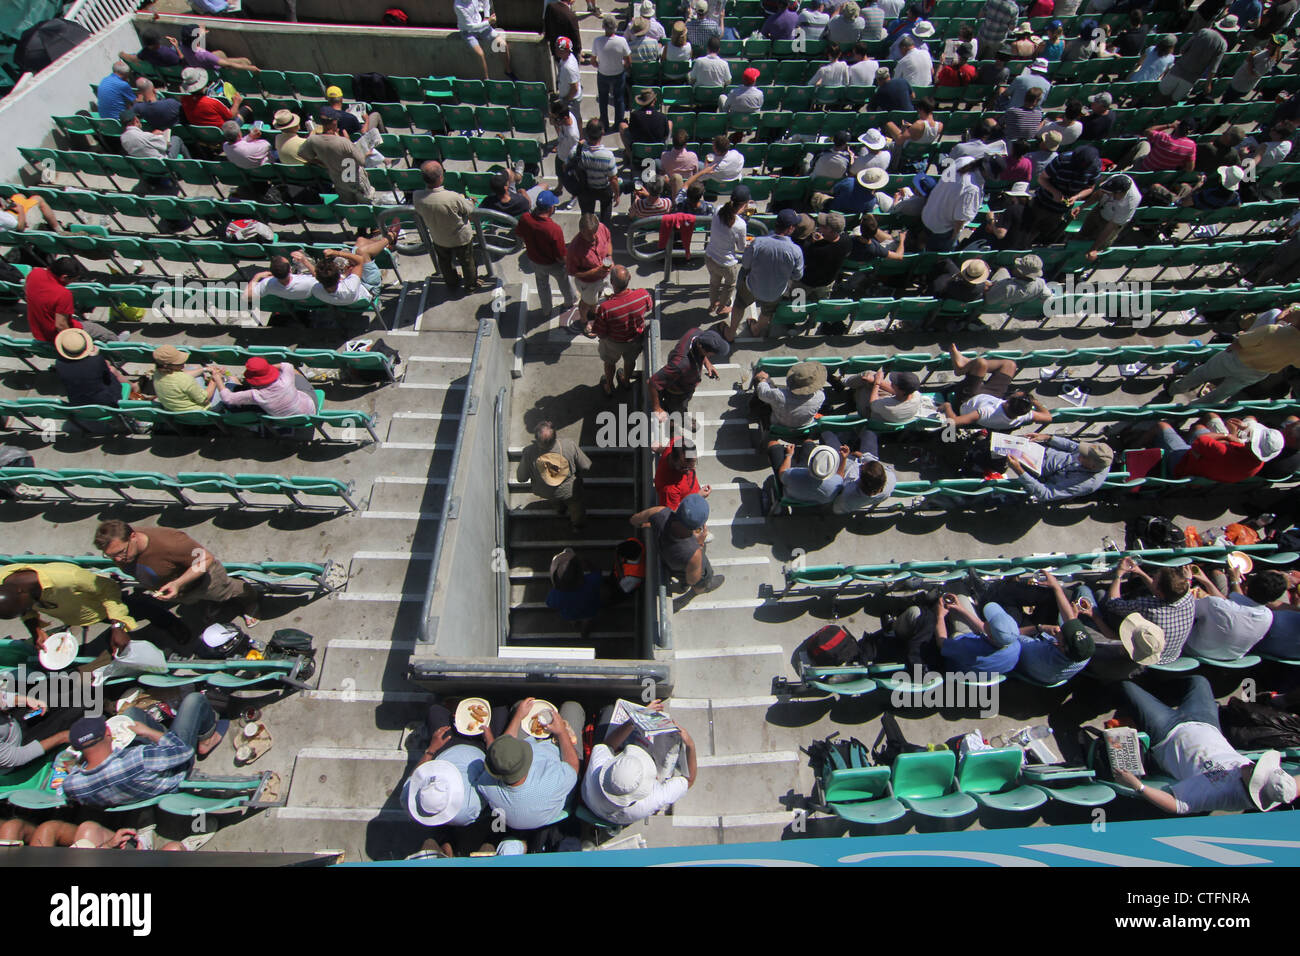 Spectators at England v South Africa. 2nd Test. 2012. The Oval cricket ground, Kennington, London, UK - Stock Image